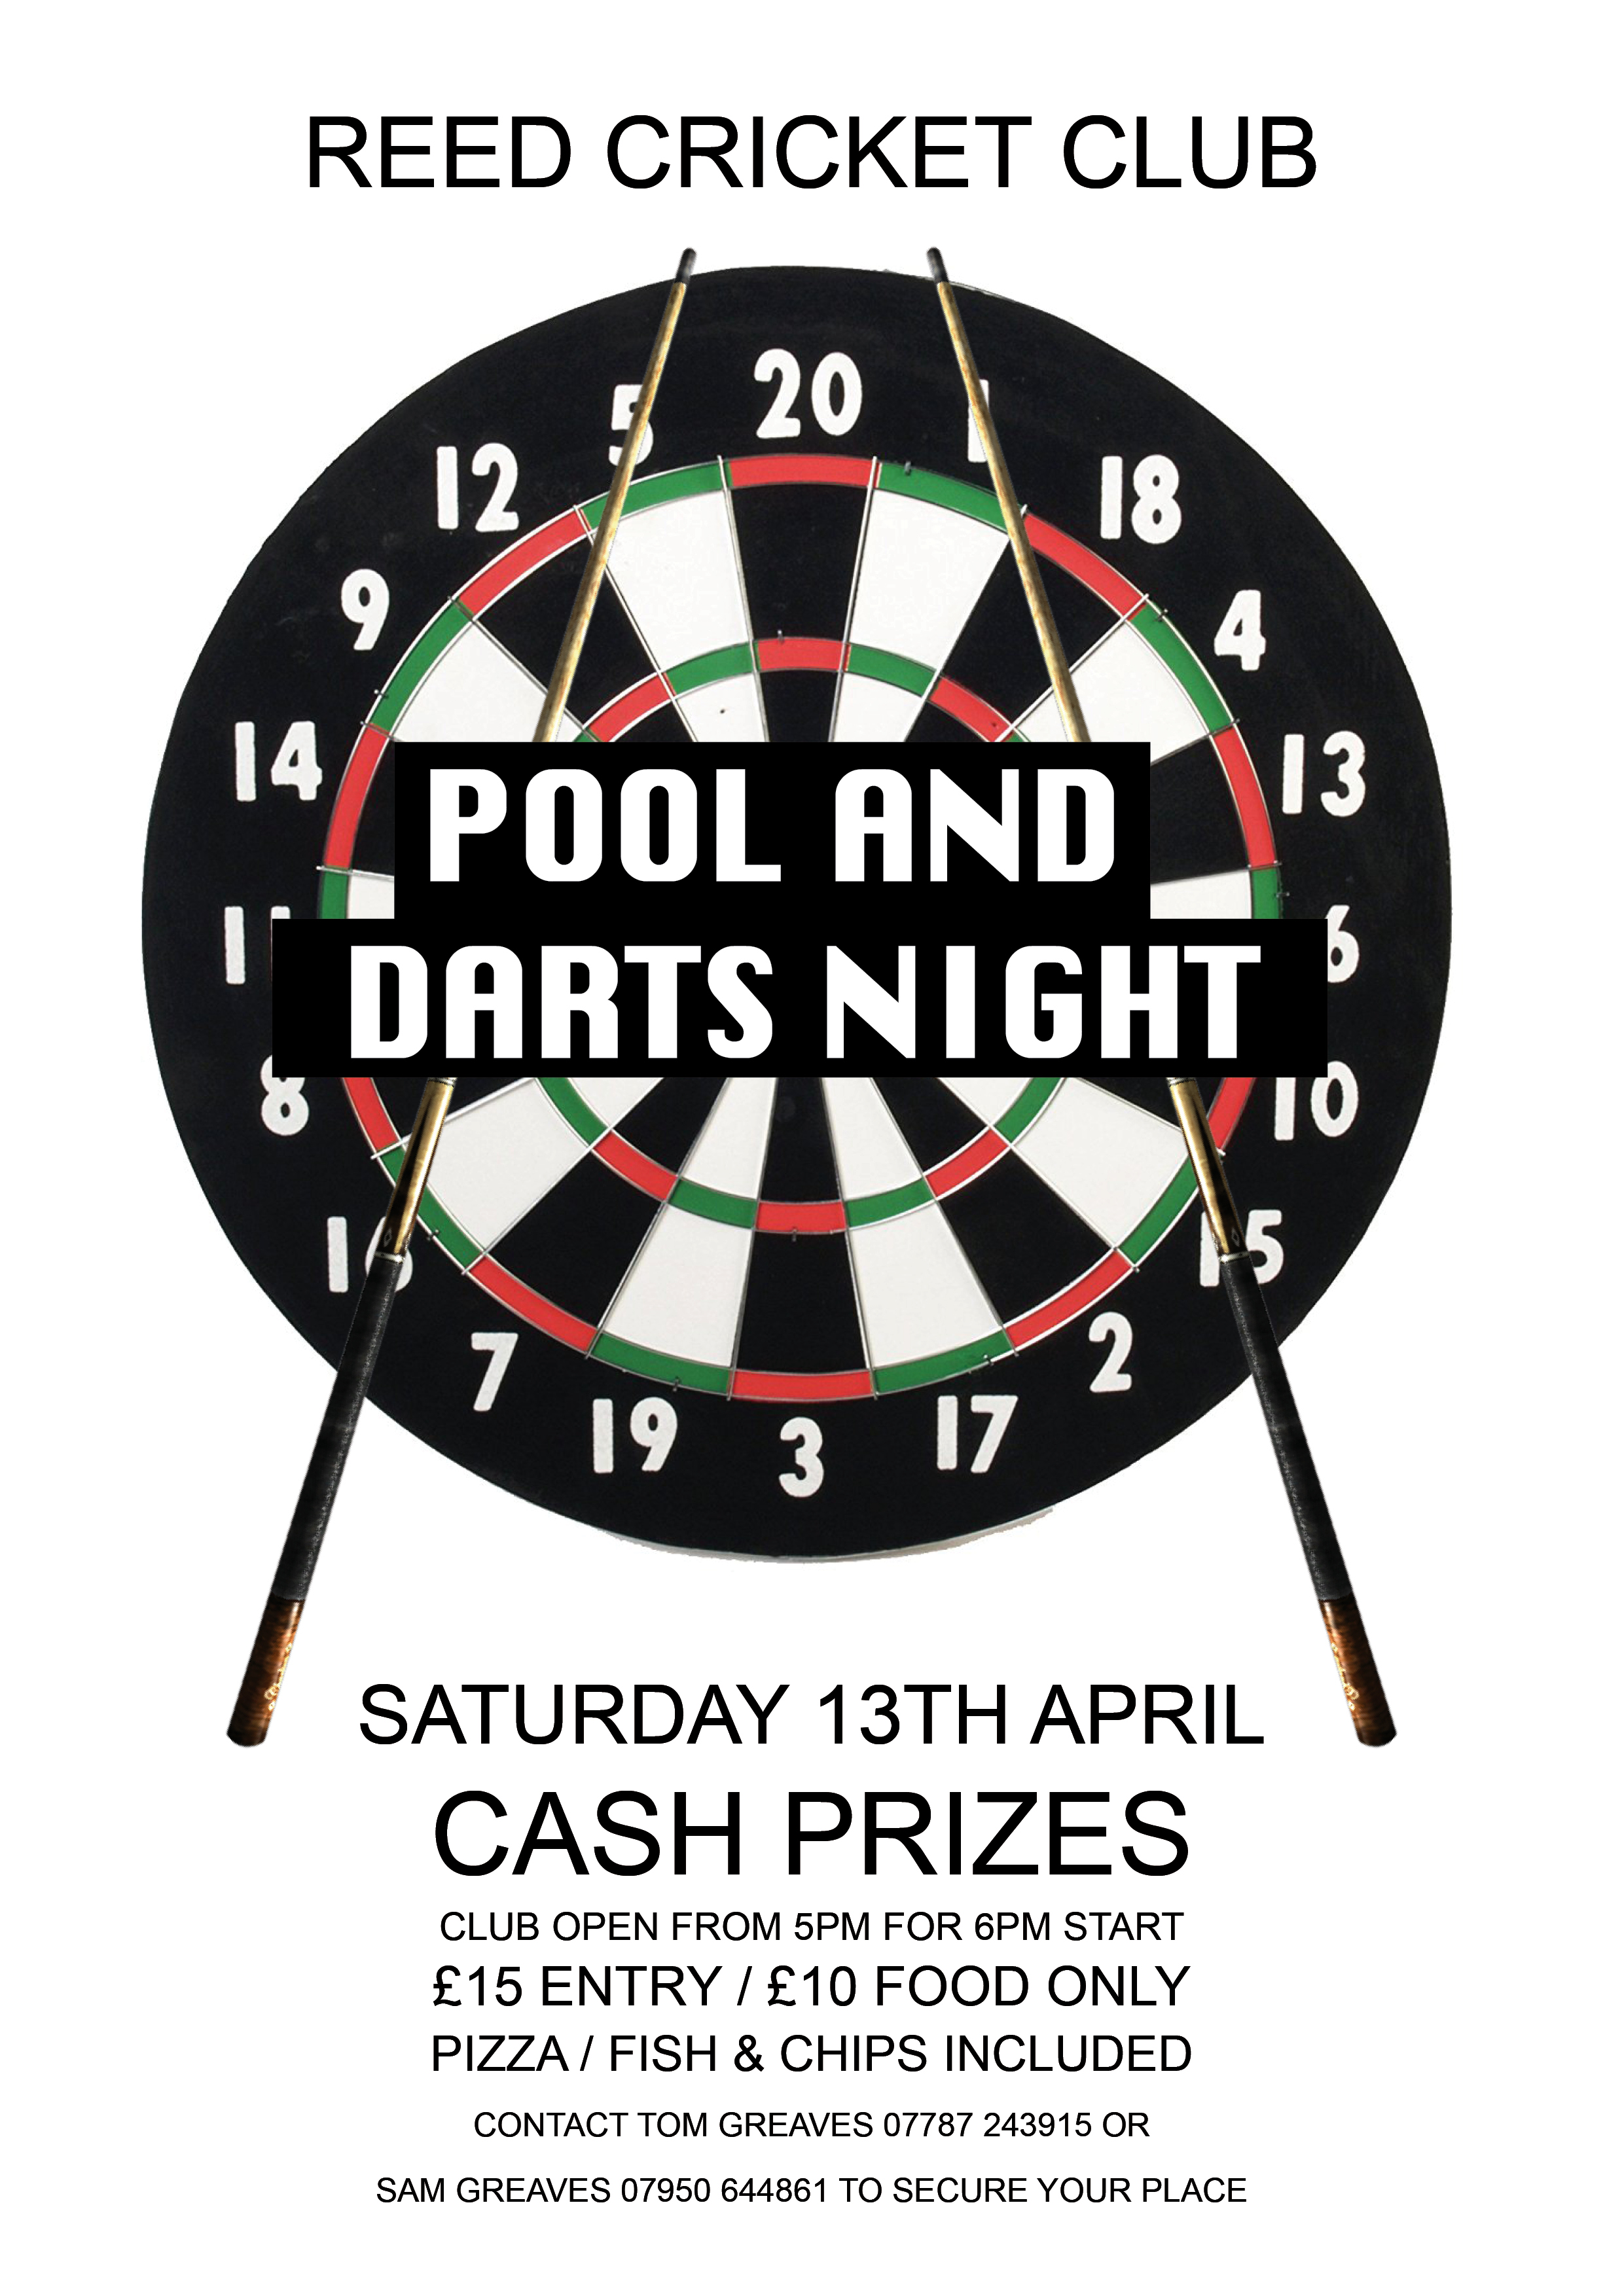 Reed CC Pool & Darts Night 2019 – Saturday 13th April